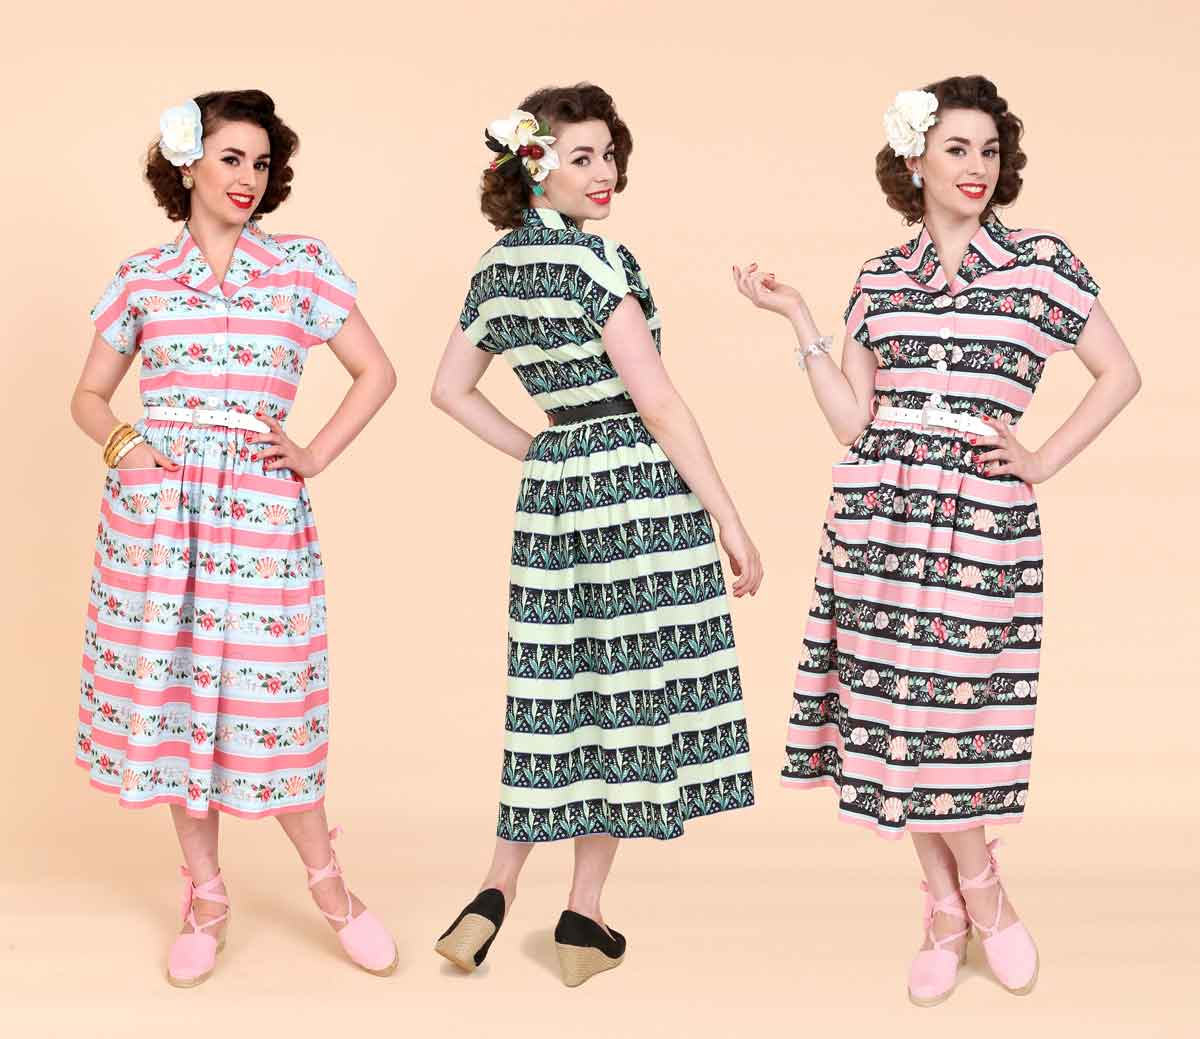 Vintage-Style-Spring-Fashions-from-Vivien-of-Holloway---Kitty-day-dress